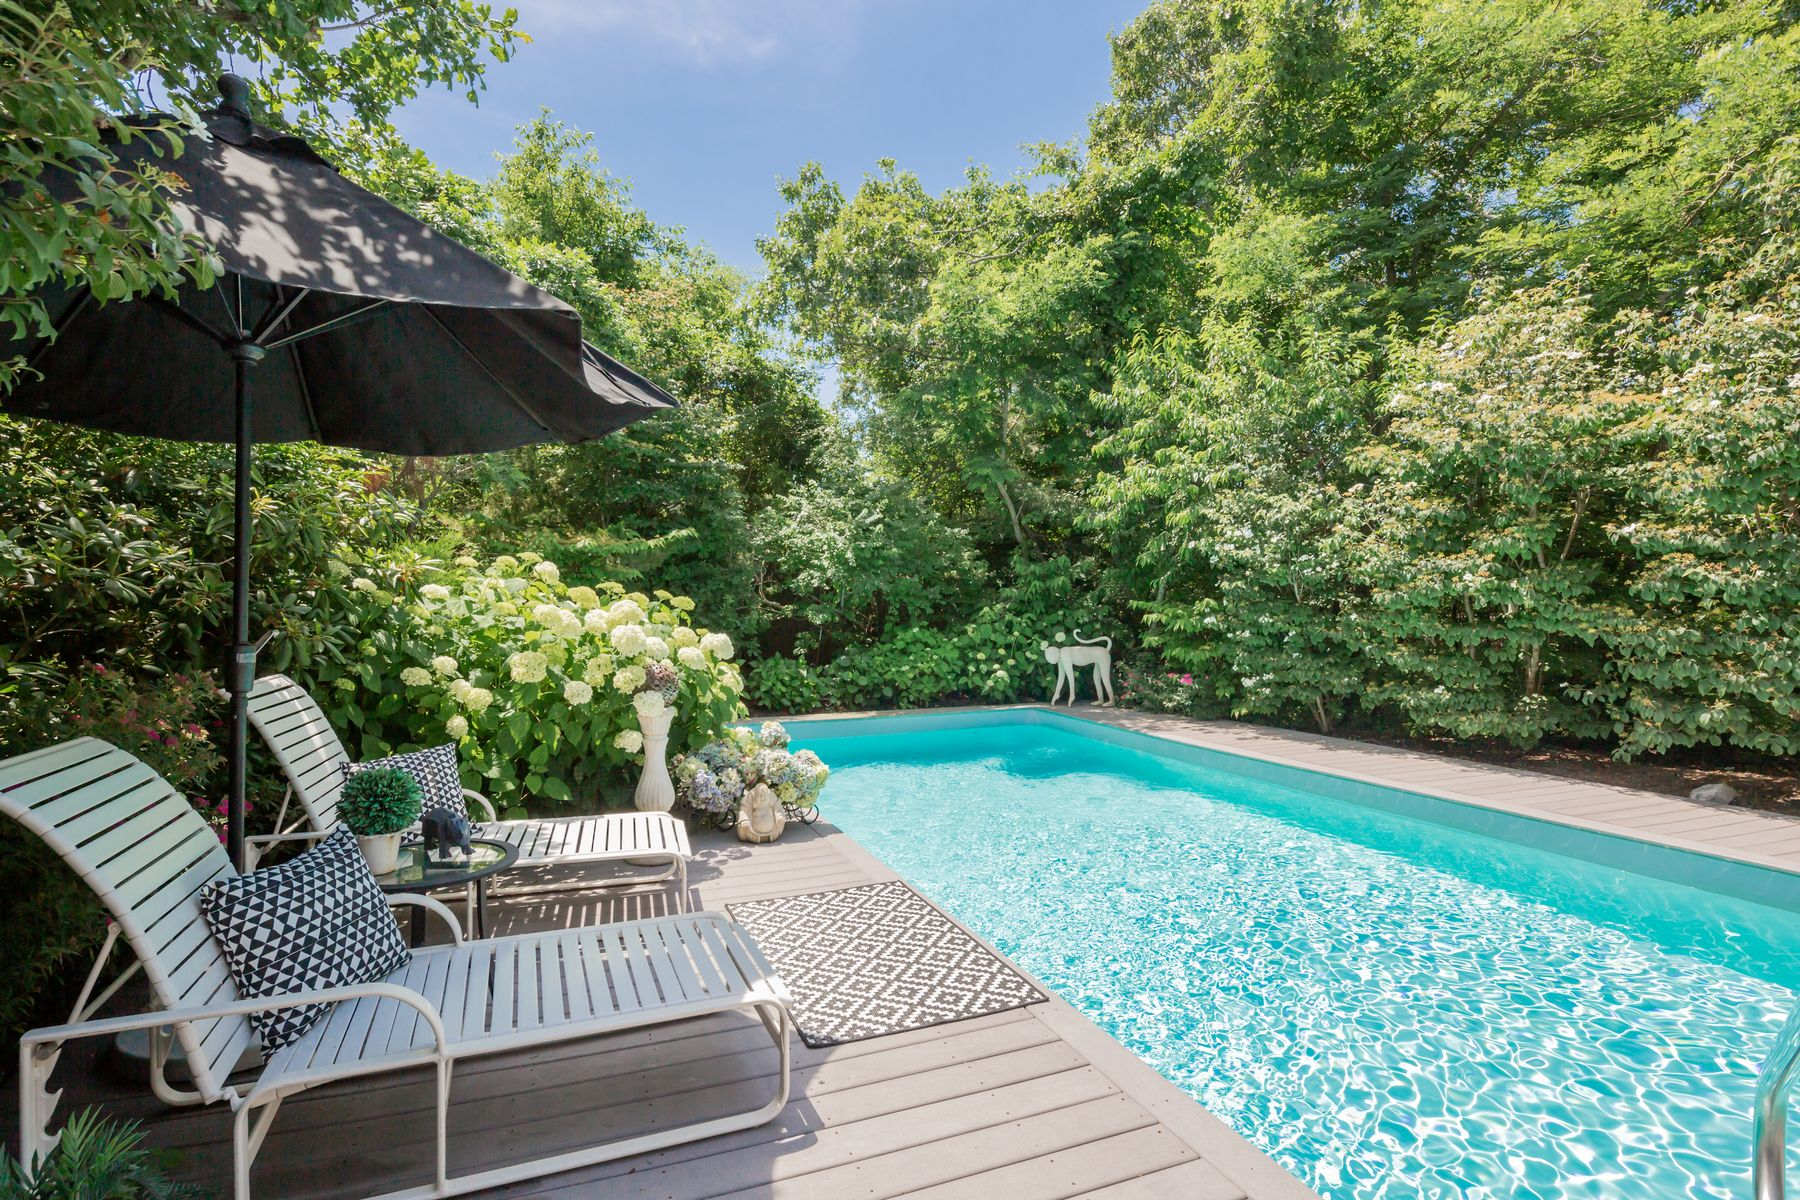 Single Family Homes for Sale at Secluded Oasis In The Dunes 78 Cliff Road Amagansett, New York 11930 United States